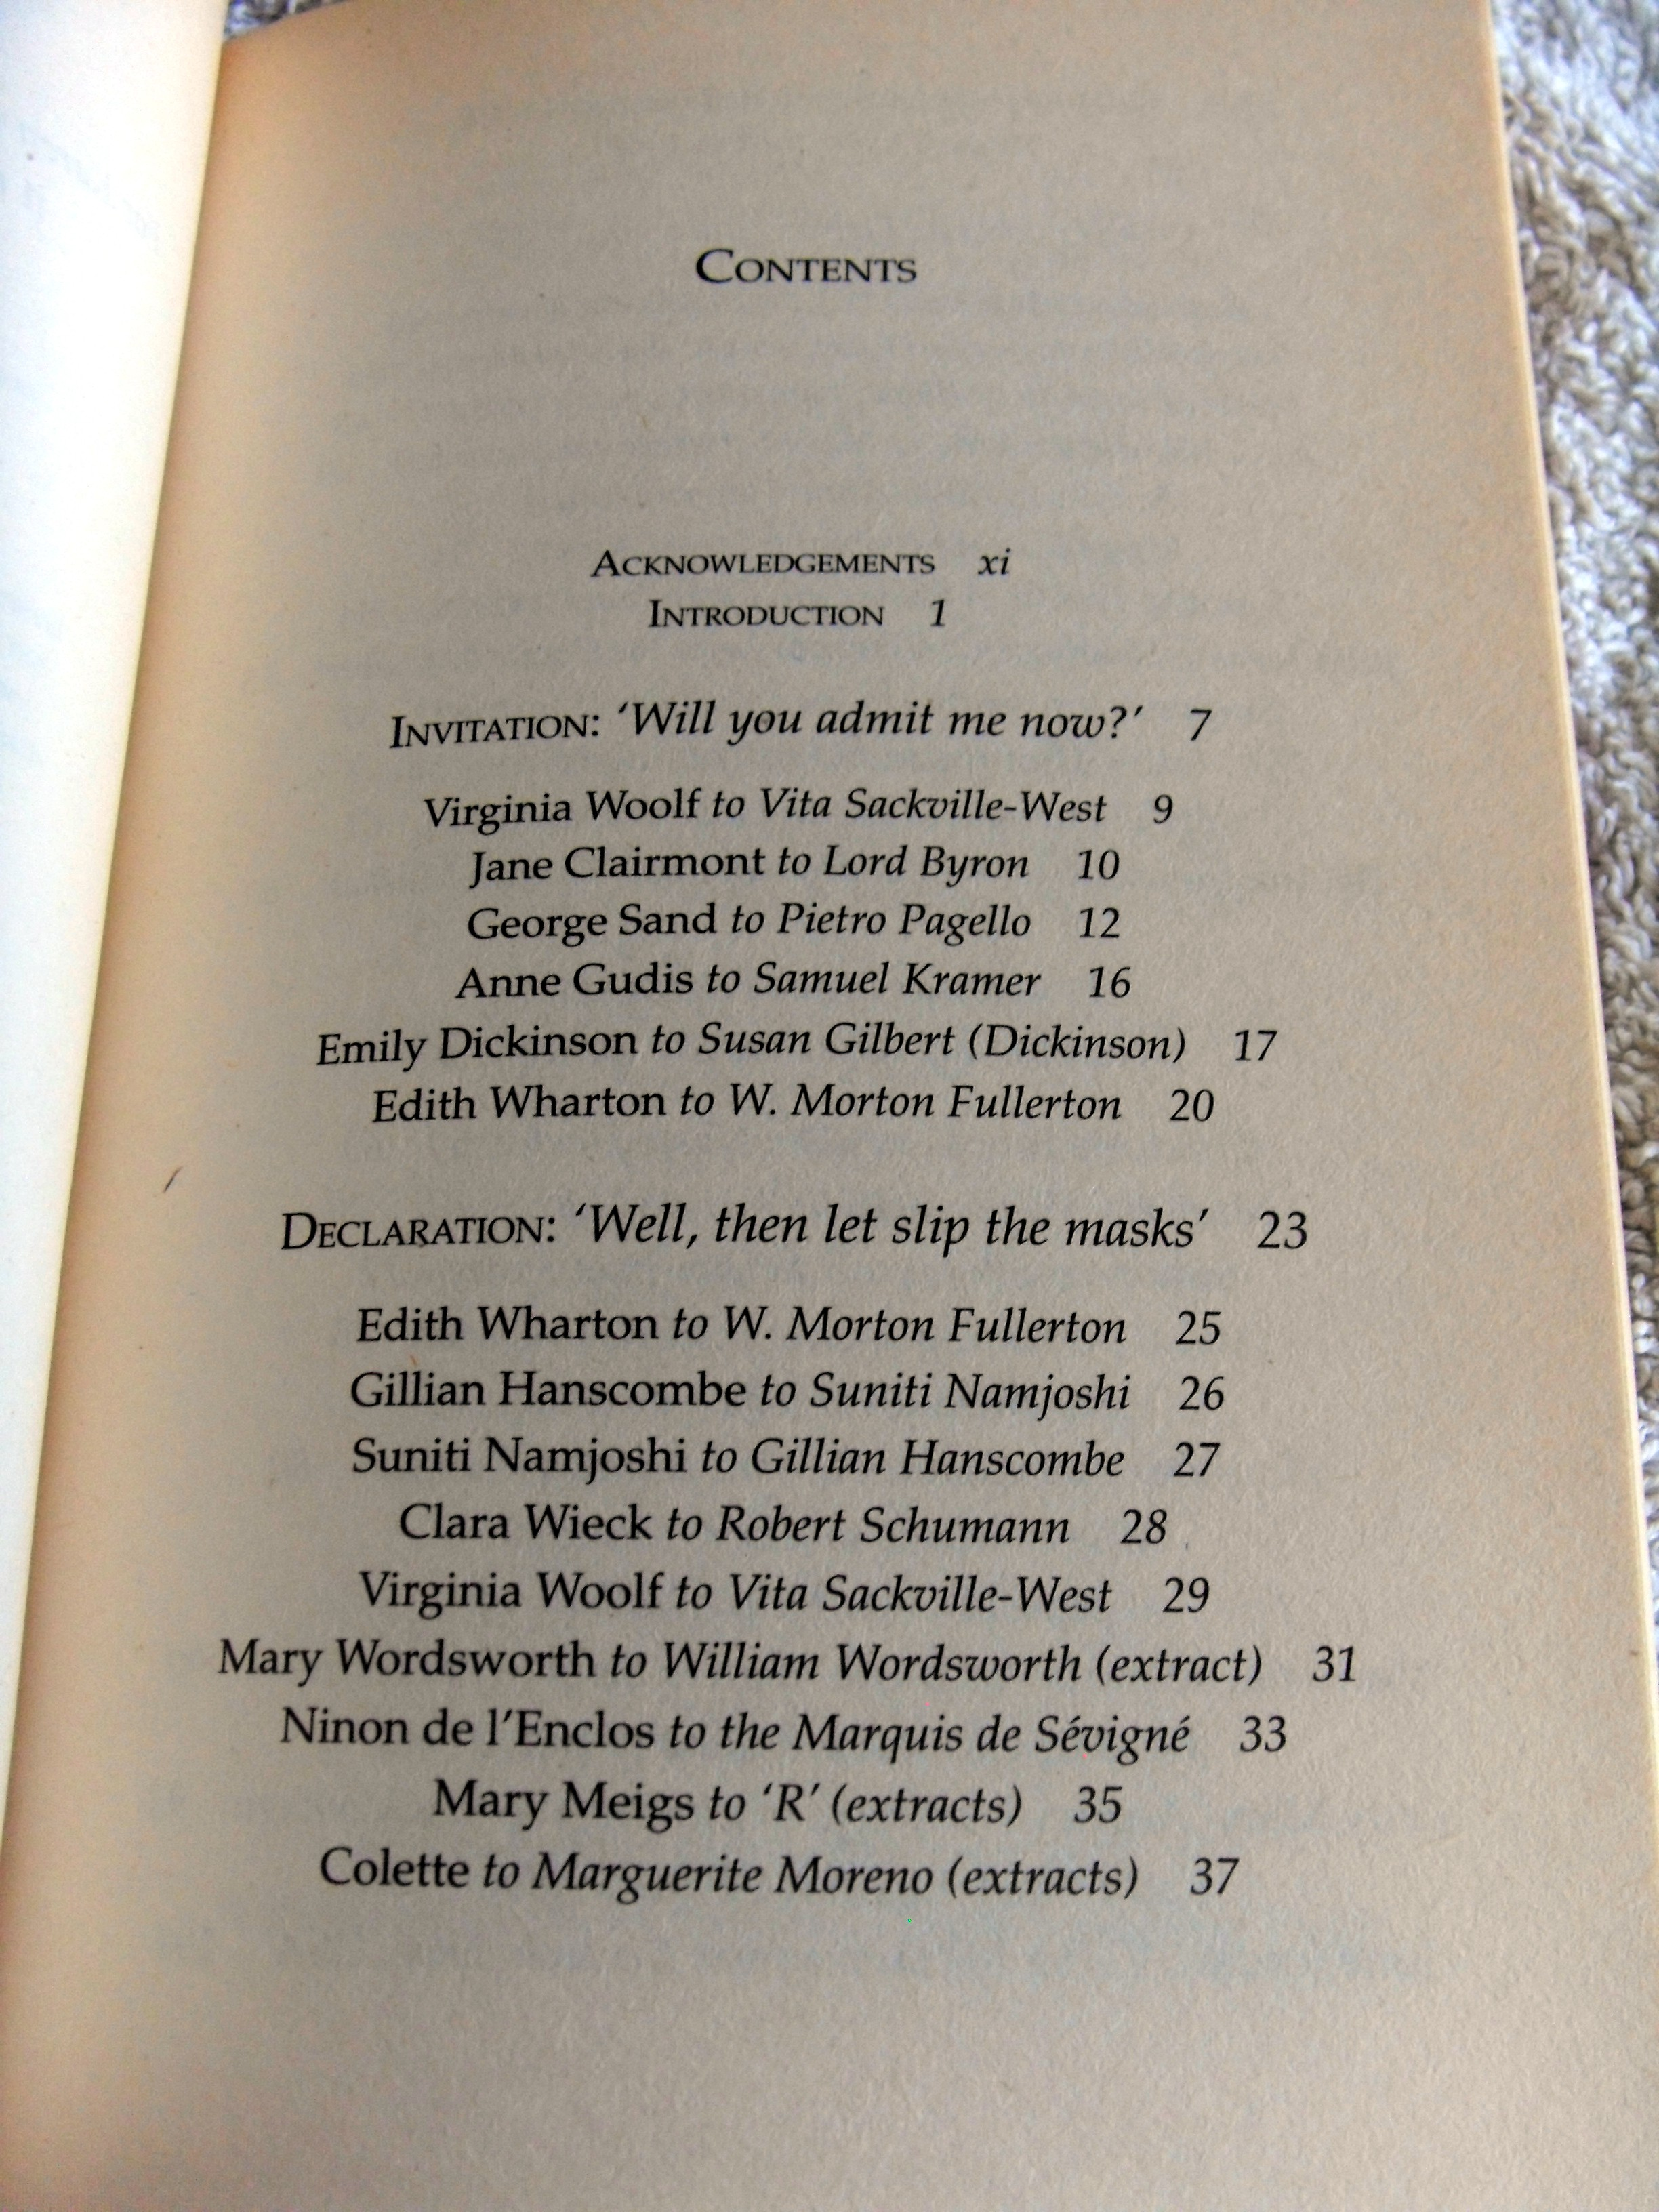 first page of contents